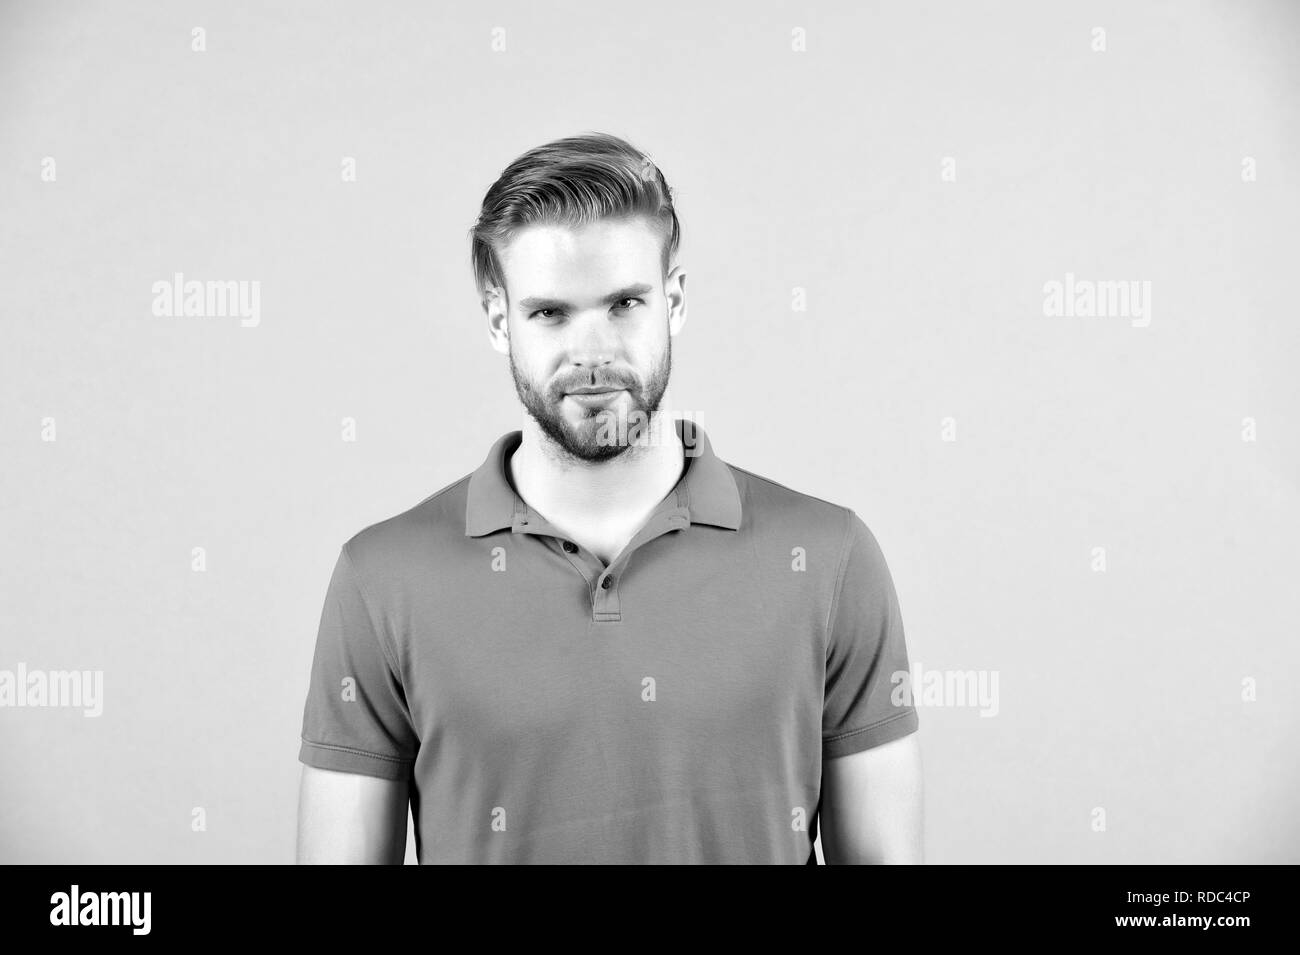 Mens beauty, fashion and style. Man in blue tshirt on grey background. Guy with bearded unshaven face. Macho with blond hair and stylish haircut. Hair care in salon or barbershop - Stock Image